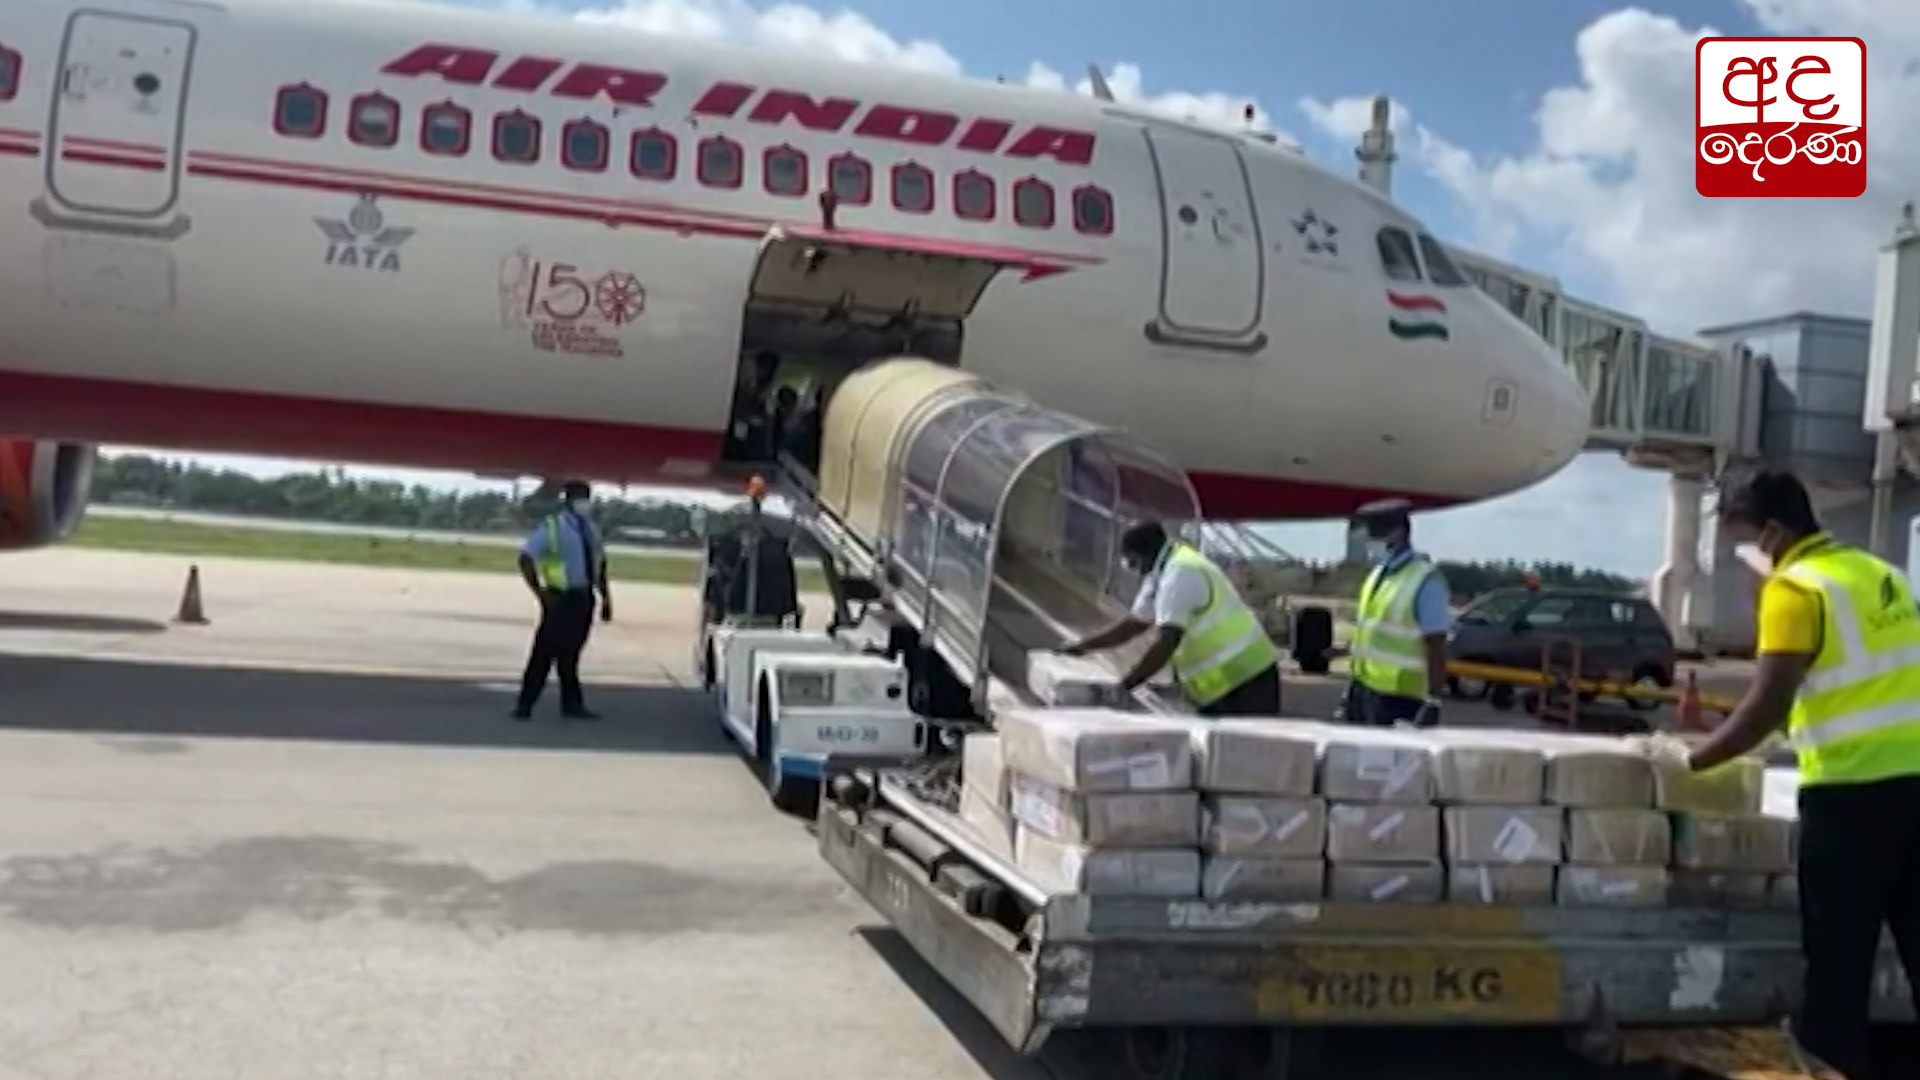 India gifts 10-tonne consignment of medicines to Sri Lanka